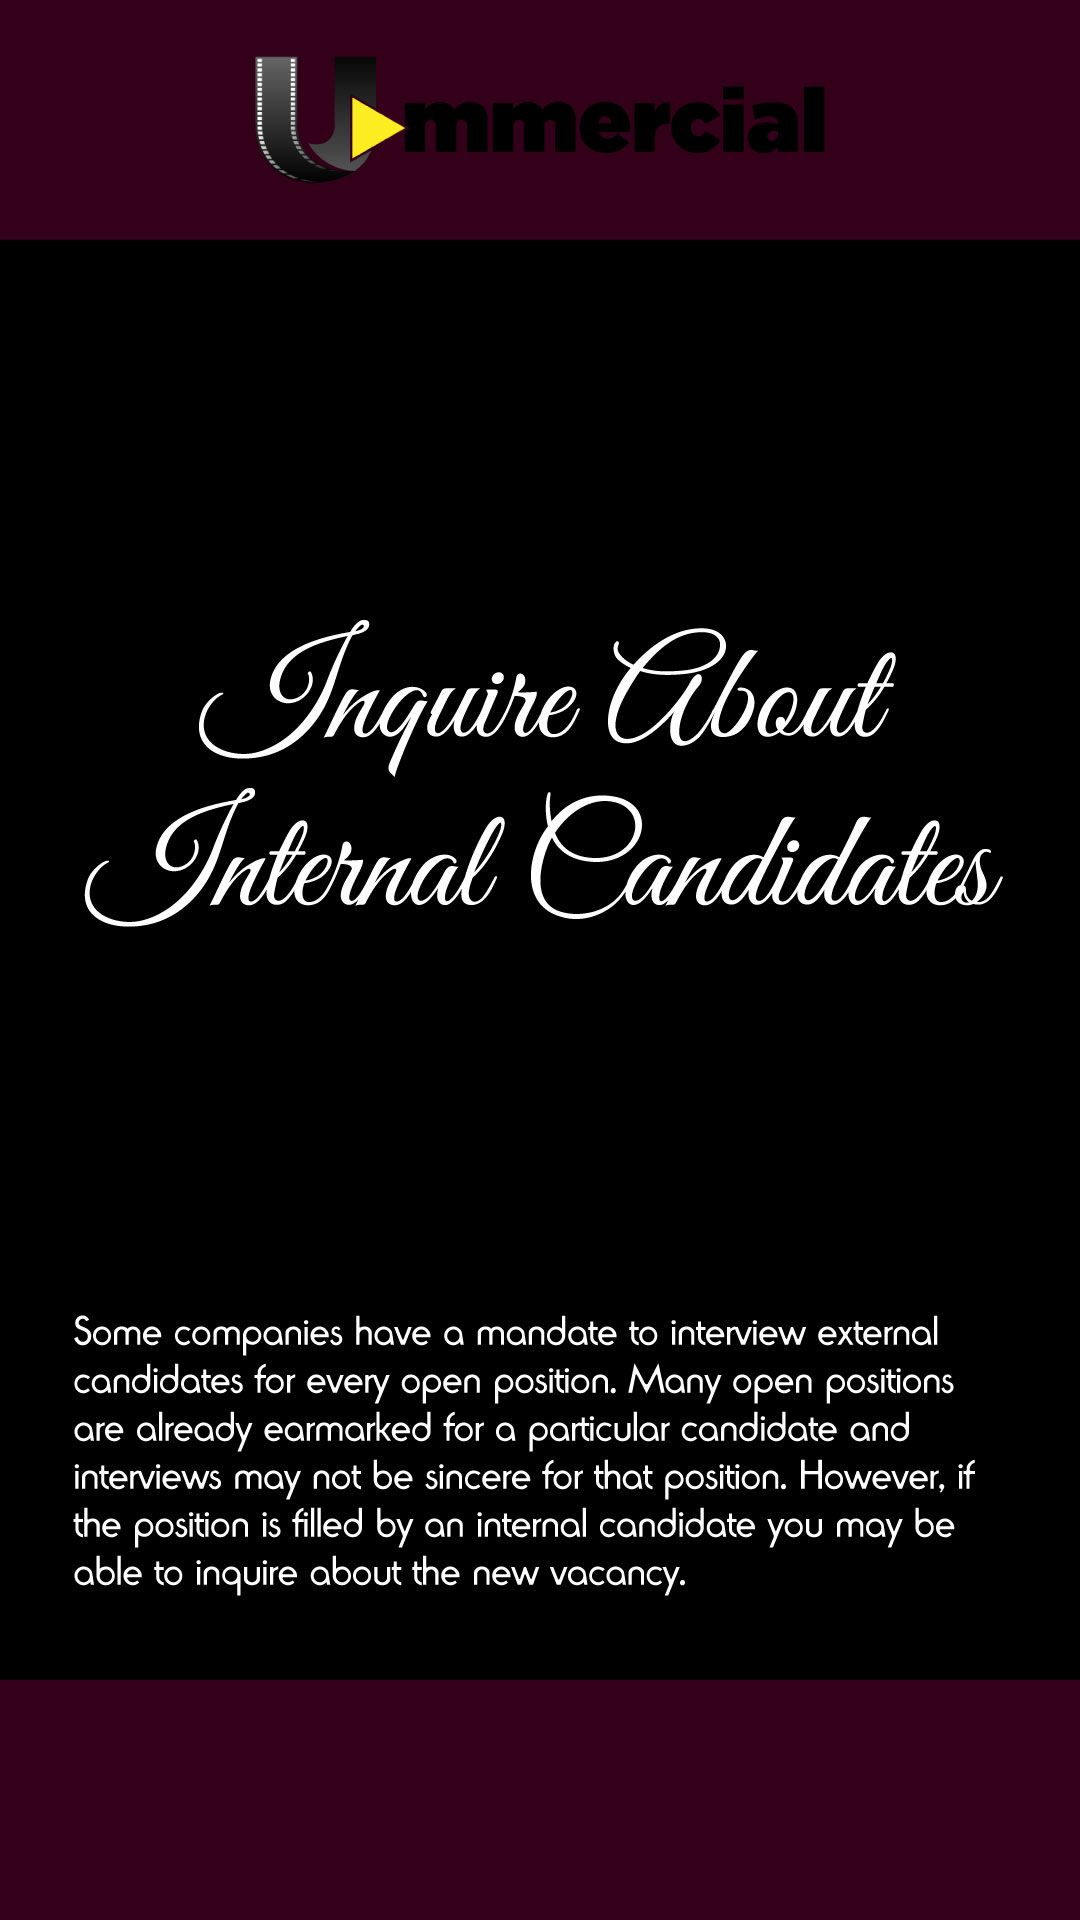 Send us your resume for a free evaluation to sample